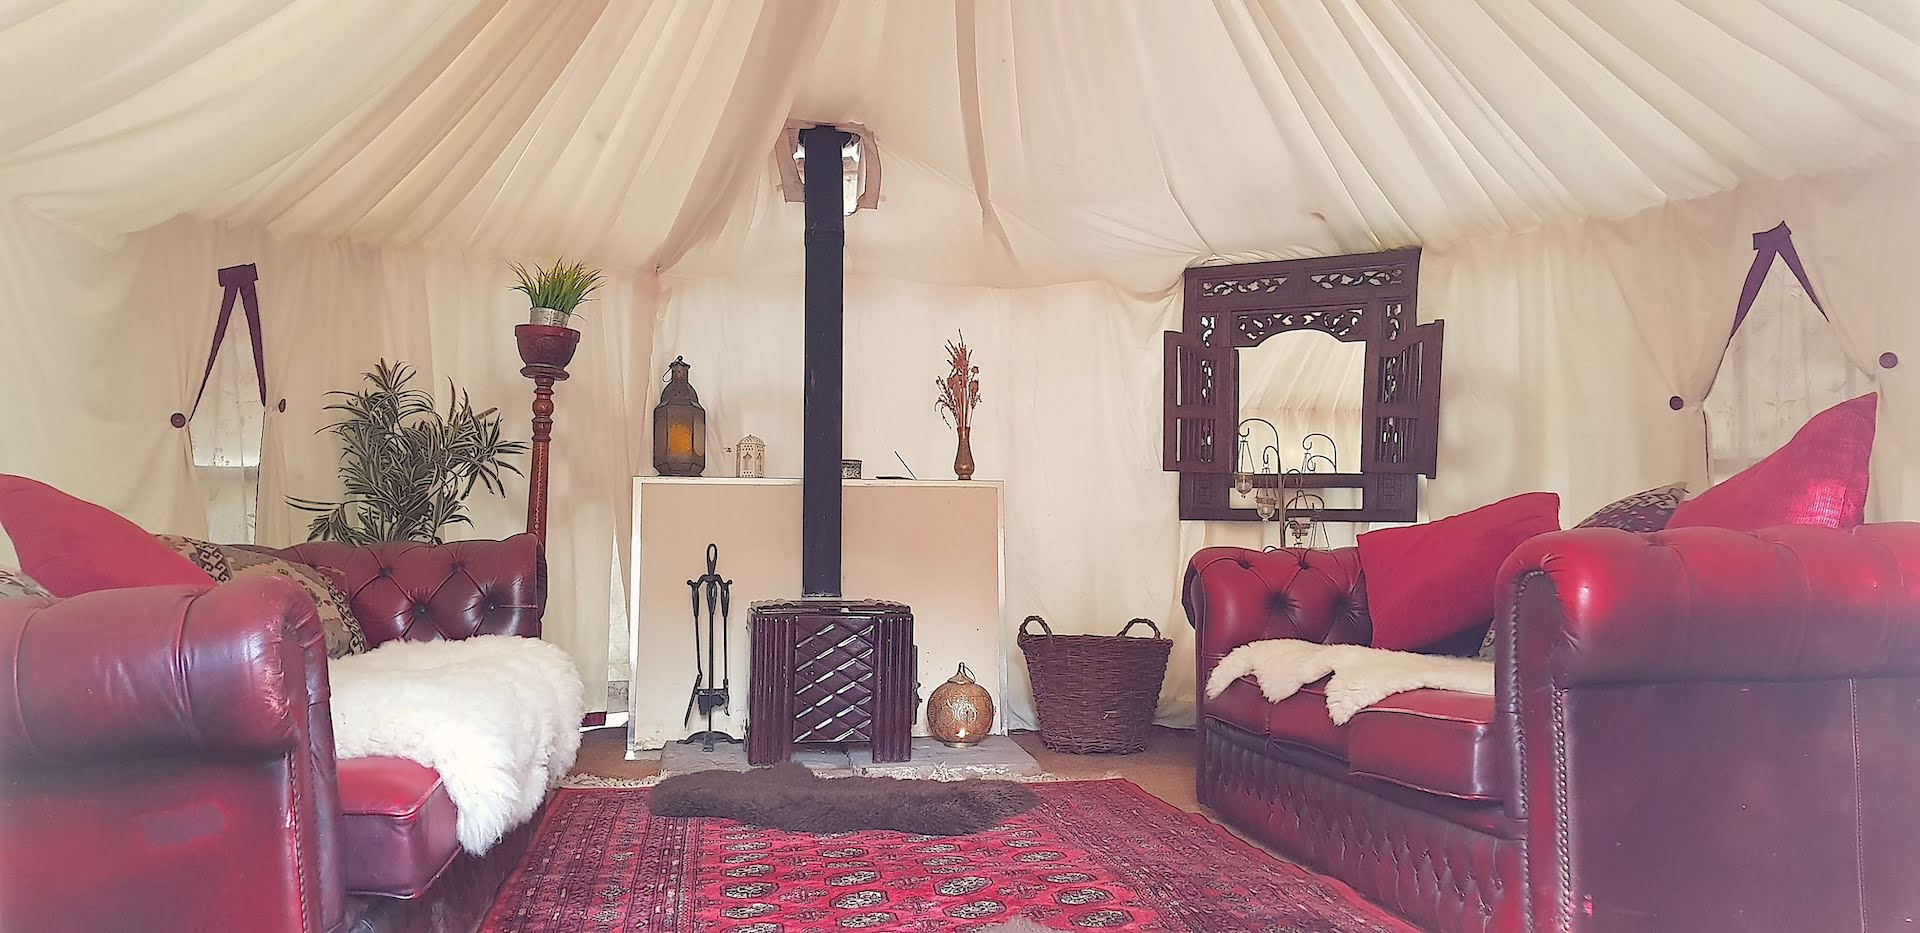 Plush Tents Yurt Hire Lounge Green Room